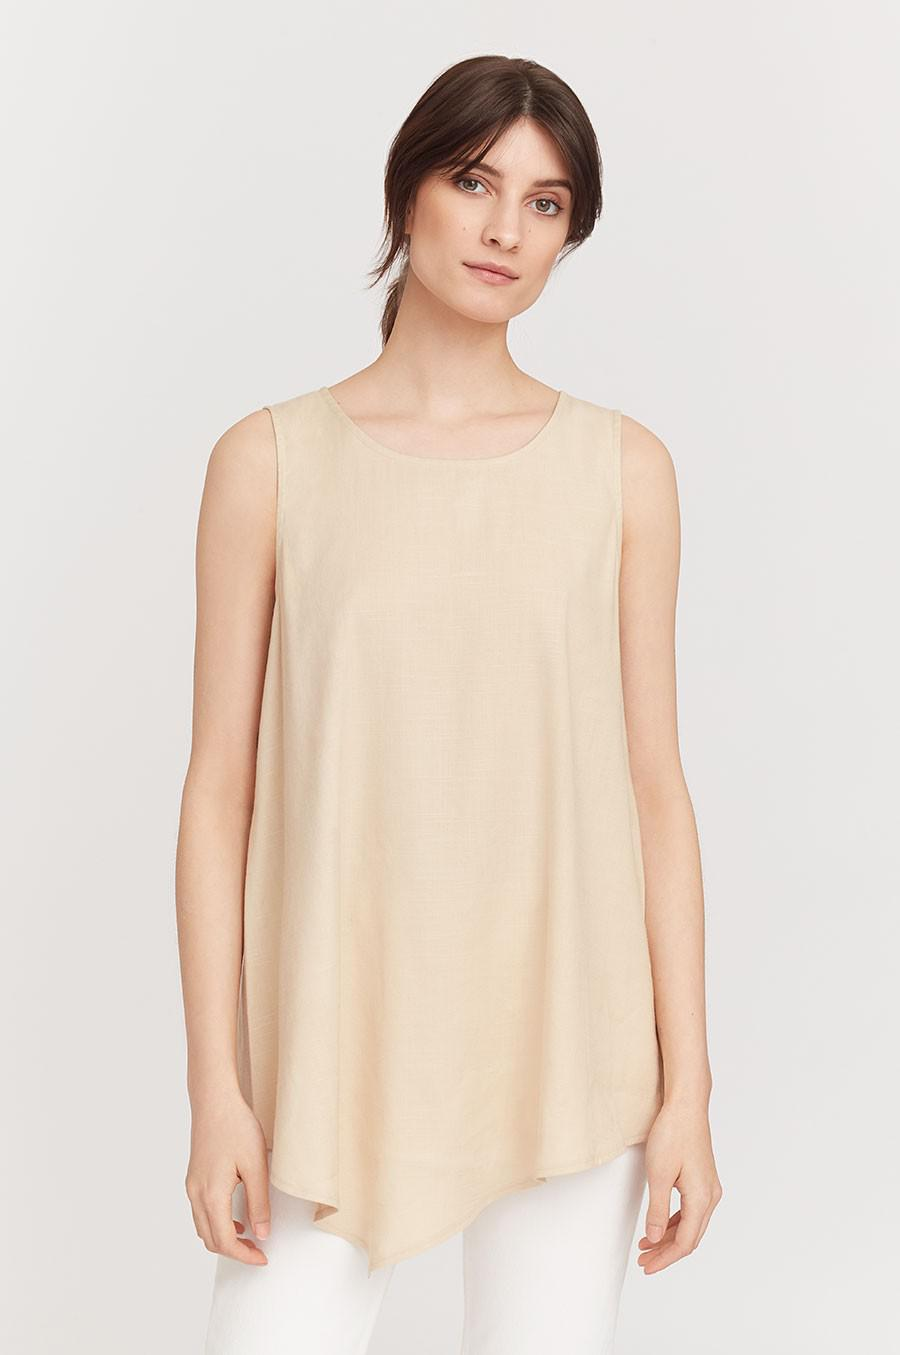 Women's Linen Draped-Front Shell Top in Sand | Size: 1